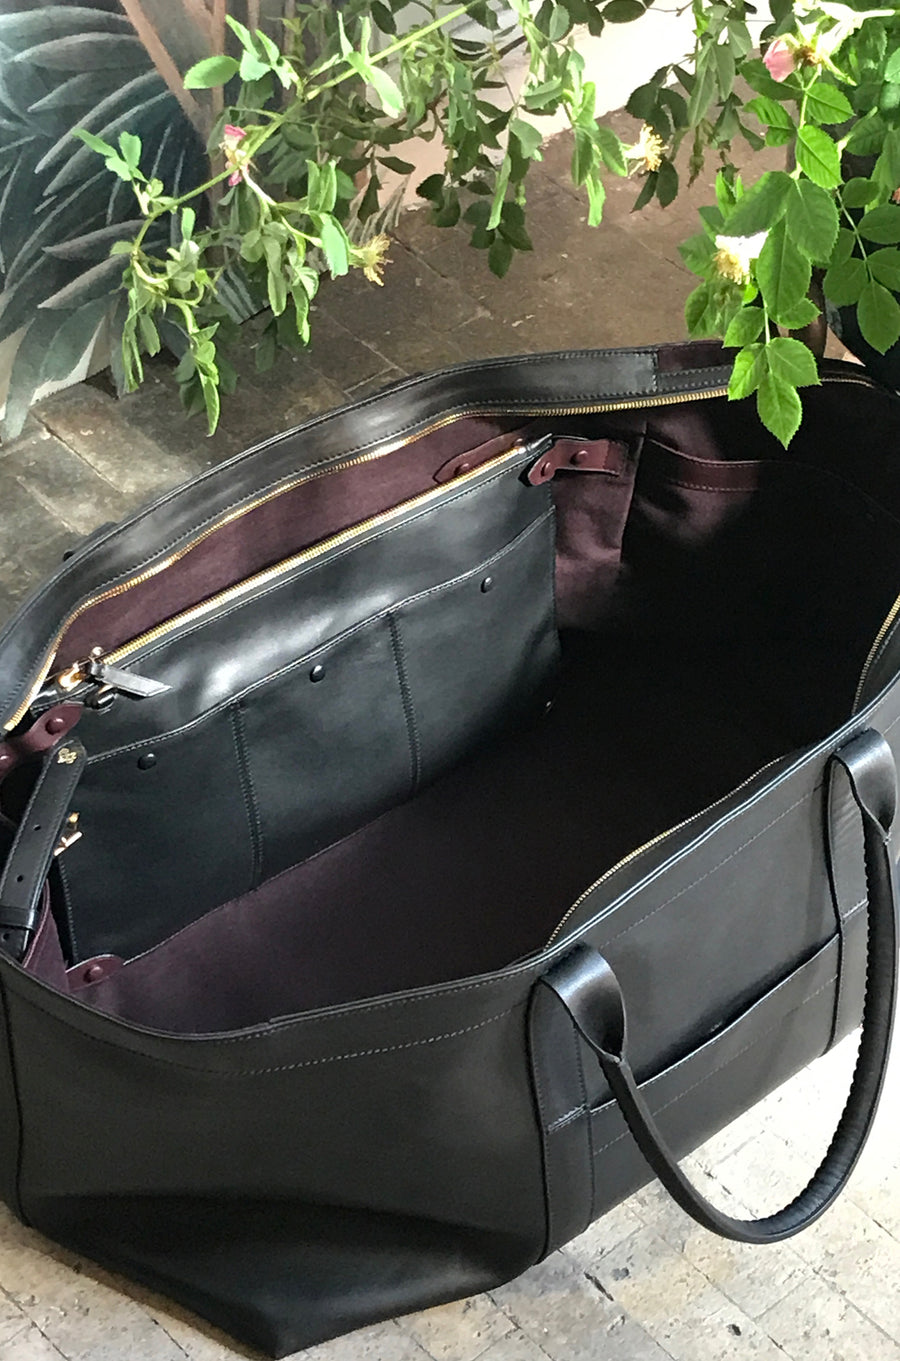 The Rousseau Carryall